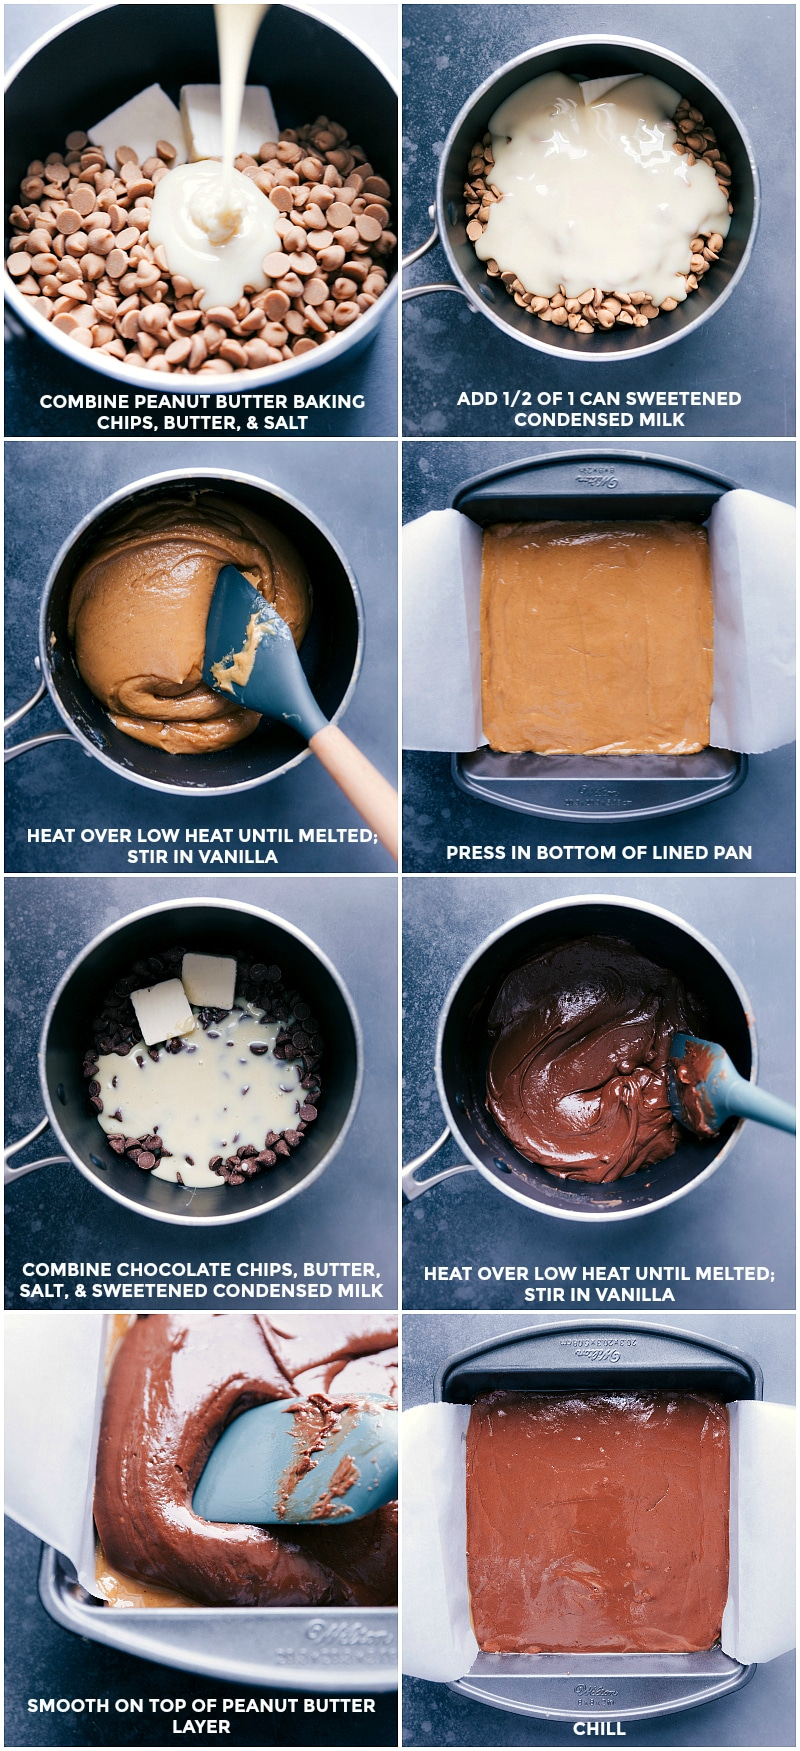 Process shots: combining and melting the ingredients for the peanut butter layer; spreading in a pan; combining and melting ingredients for the chocolate layer; spreading into the pan.